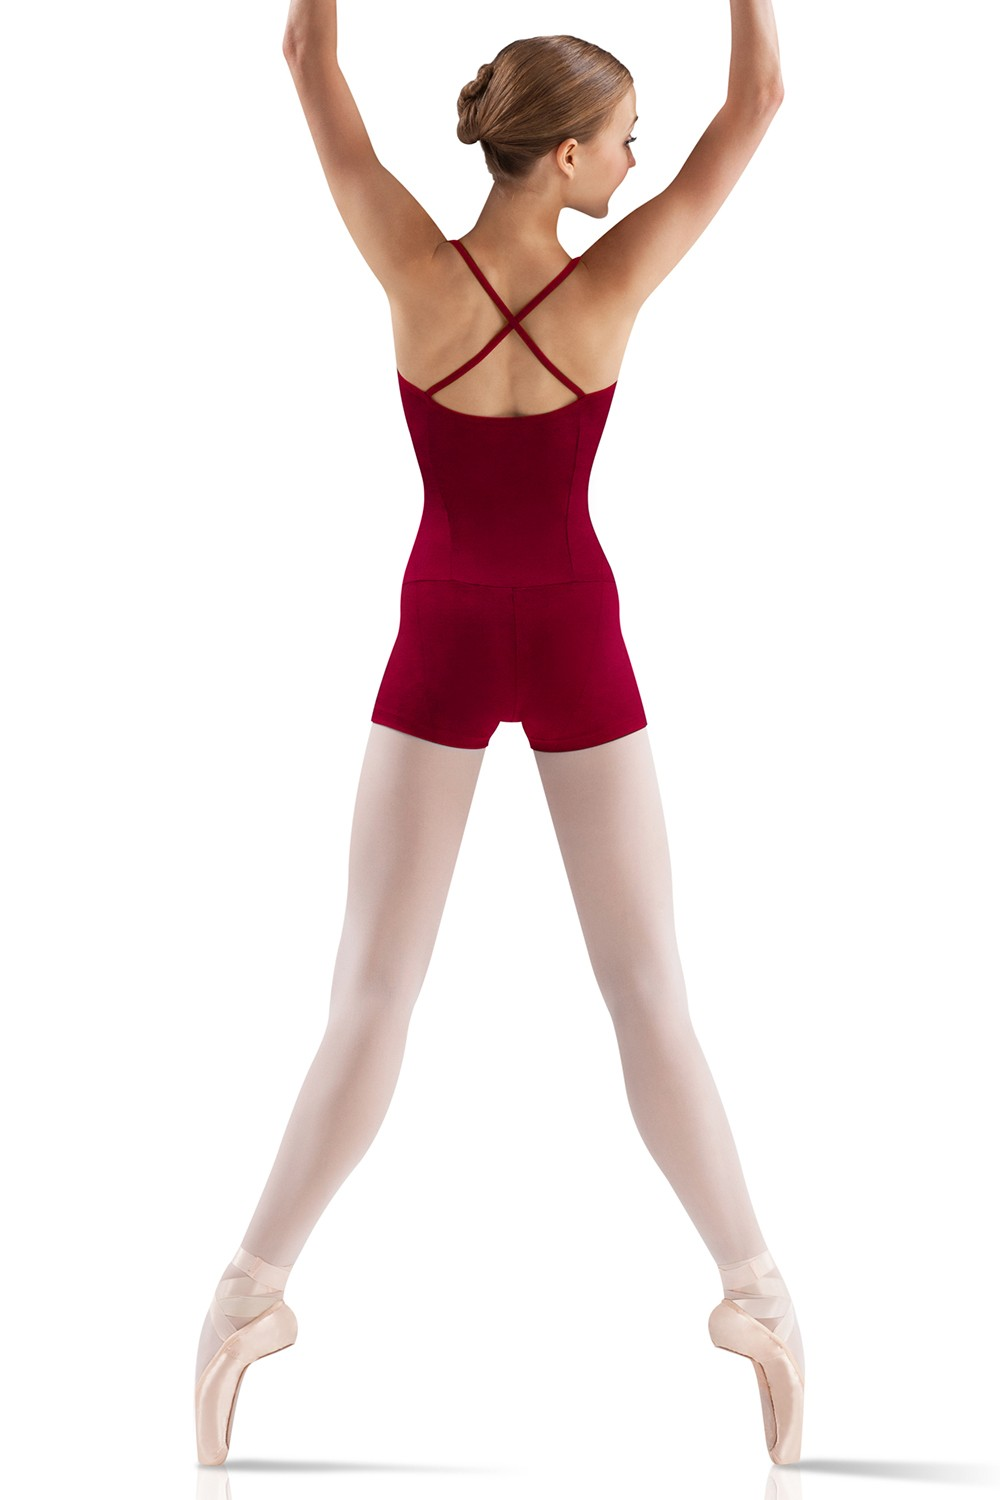 Boy Short Unitard Women's Dance Leotards